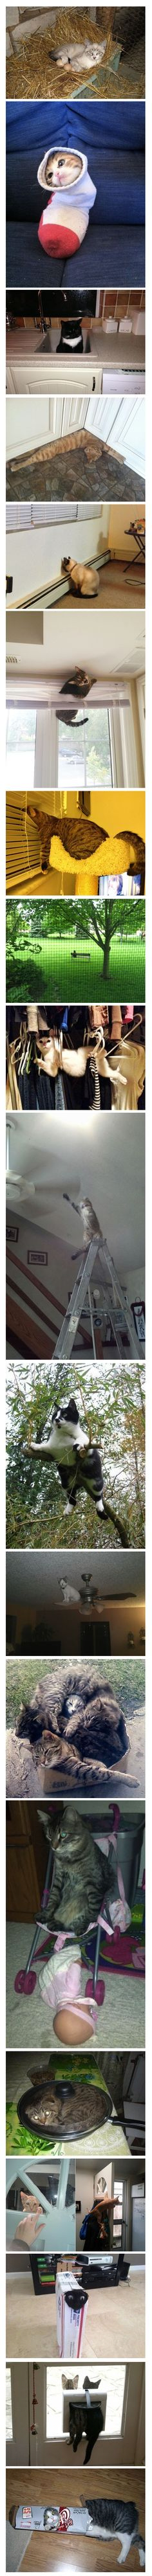 Cats in things. Too funny!